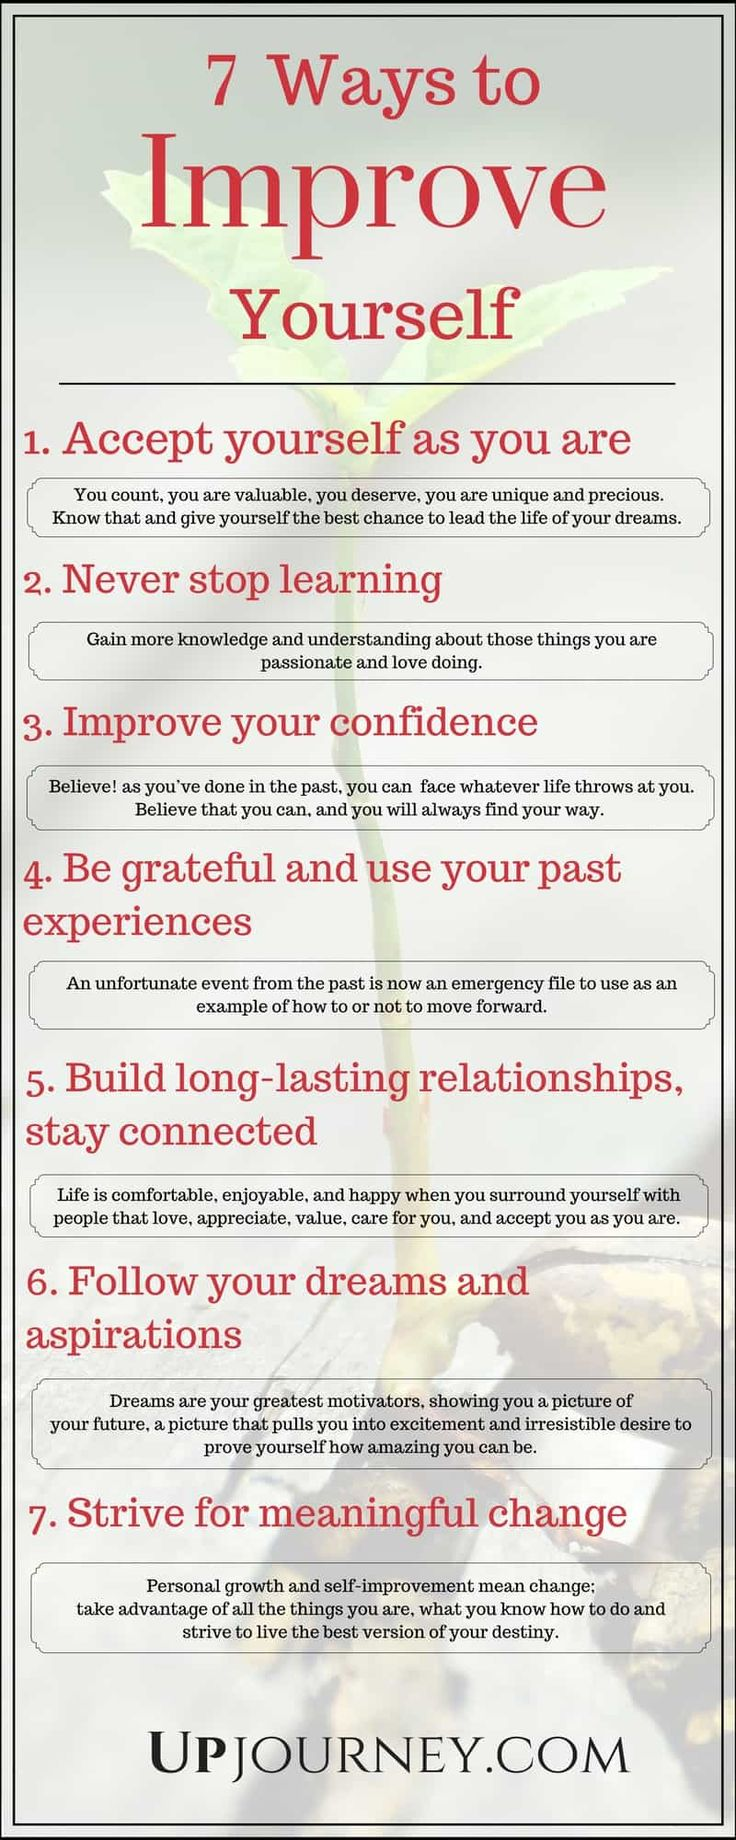 How to Improve Yourself Everyday (7 Ways Infographic